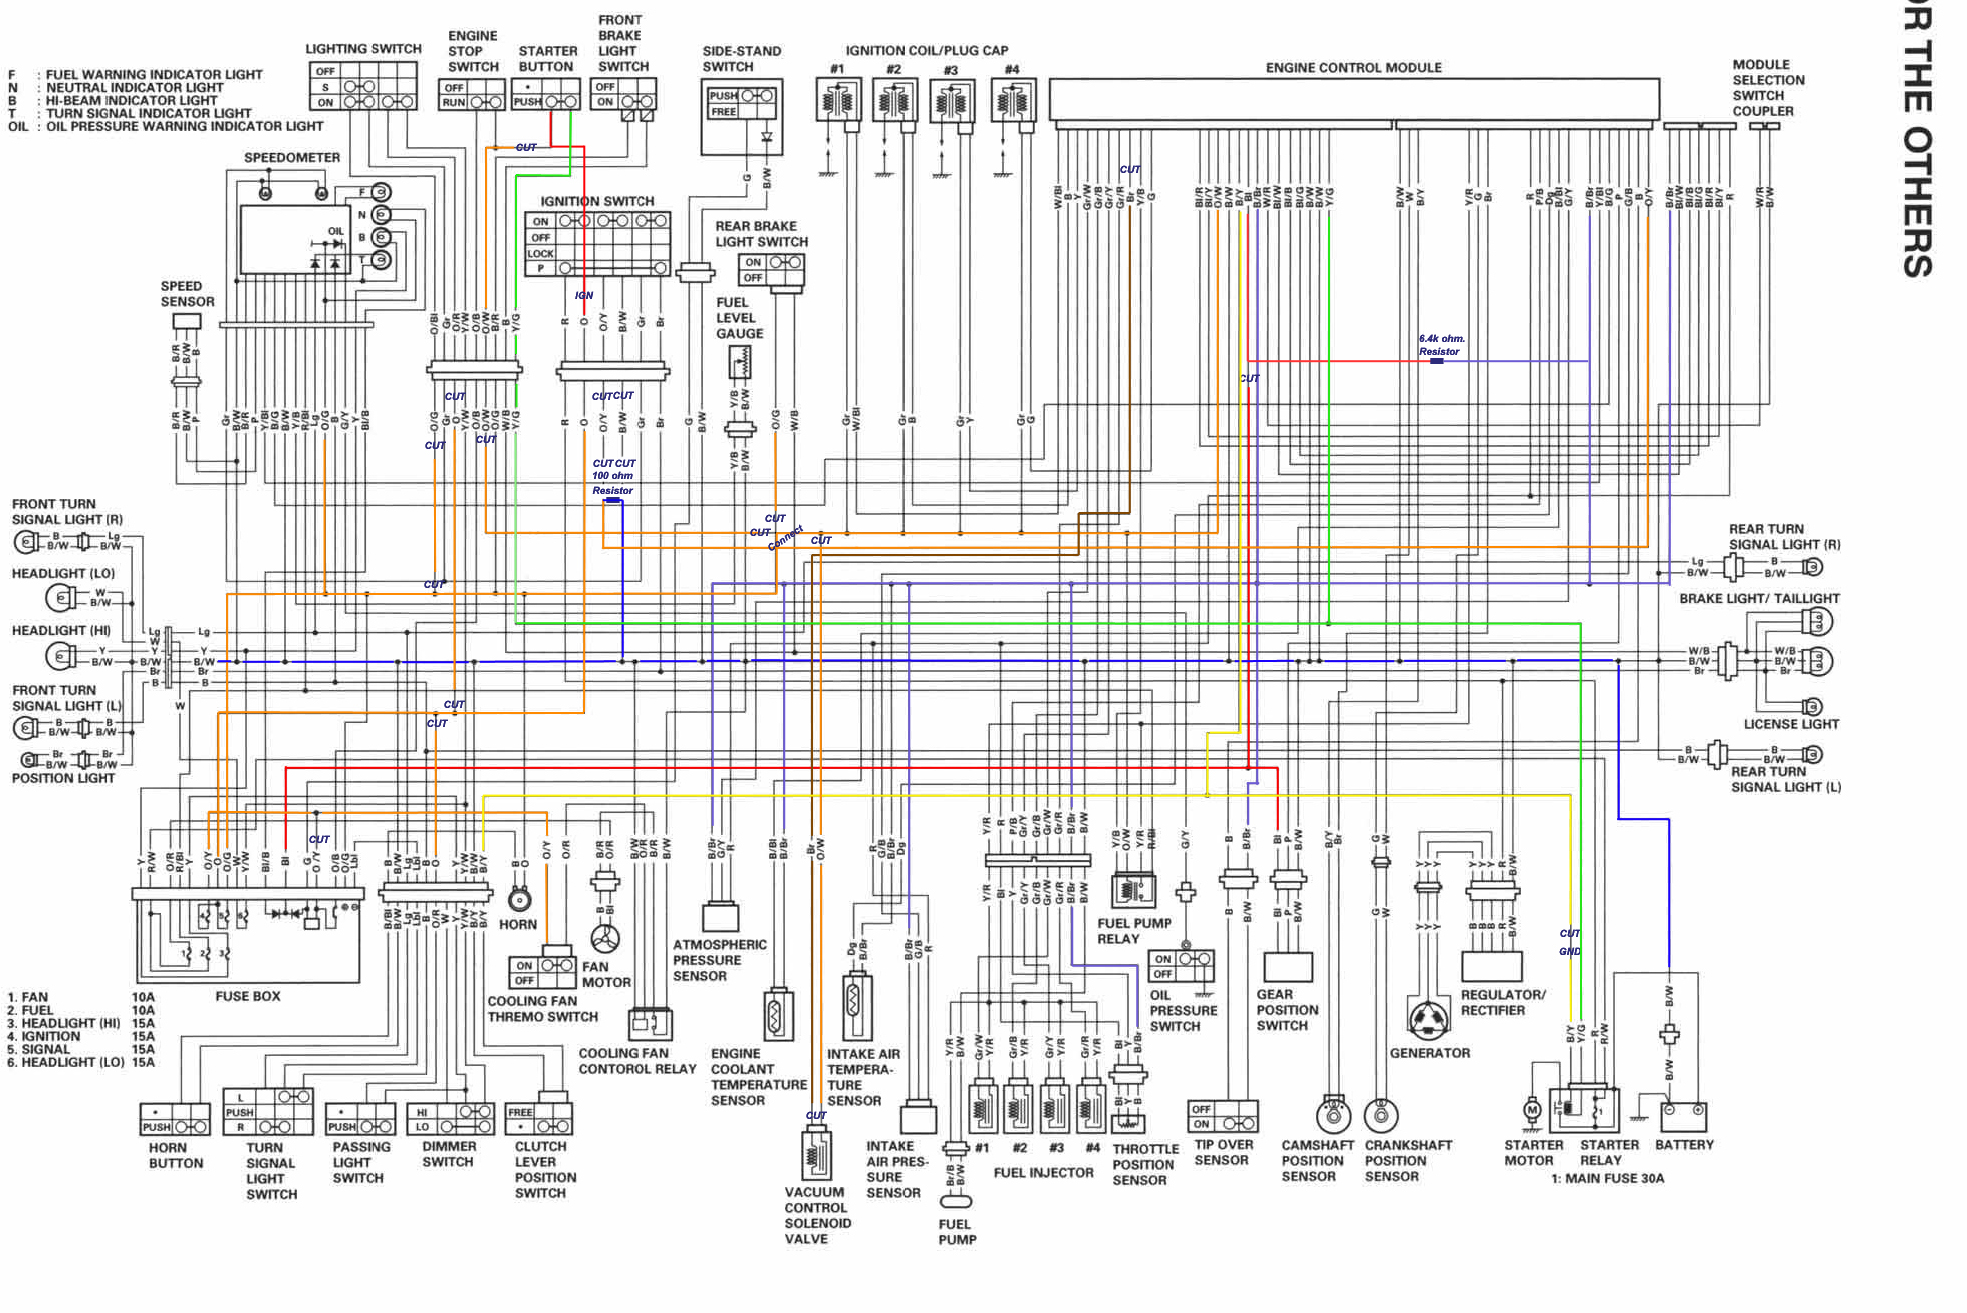 hight resolution of 2006 hayabusa wiring diagram wiring diagram pictures u2022 rh mapavick co uk 2003 chevy s10 fuel